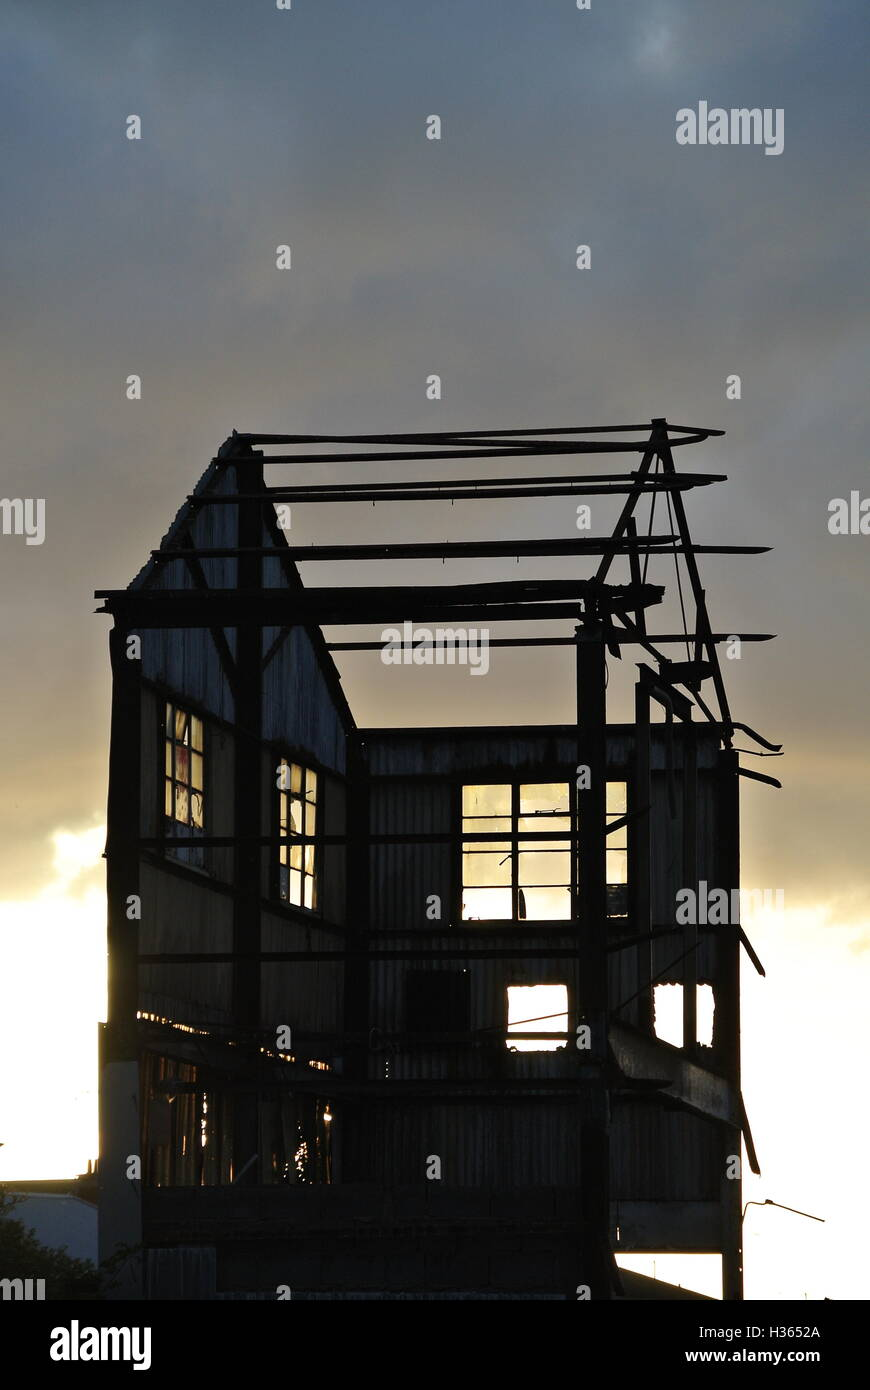 Silhouette of partially Demolished factory building on Grimsby docks - Stock Image